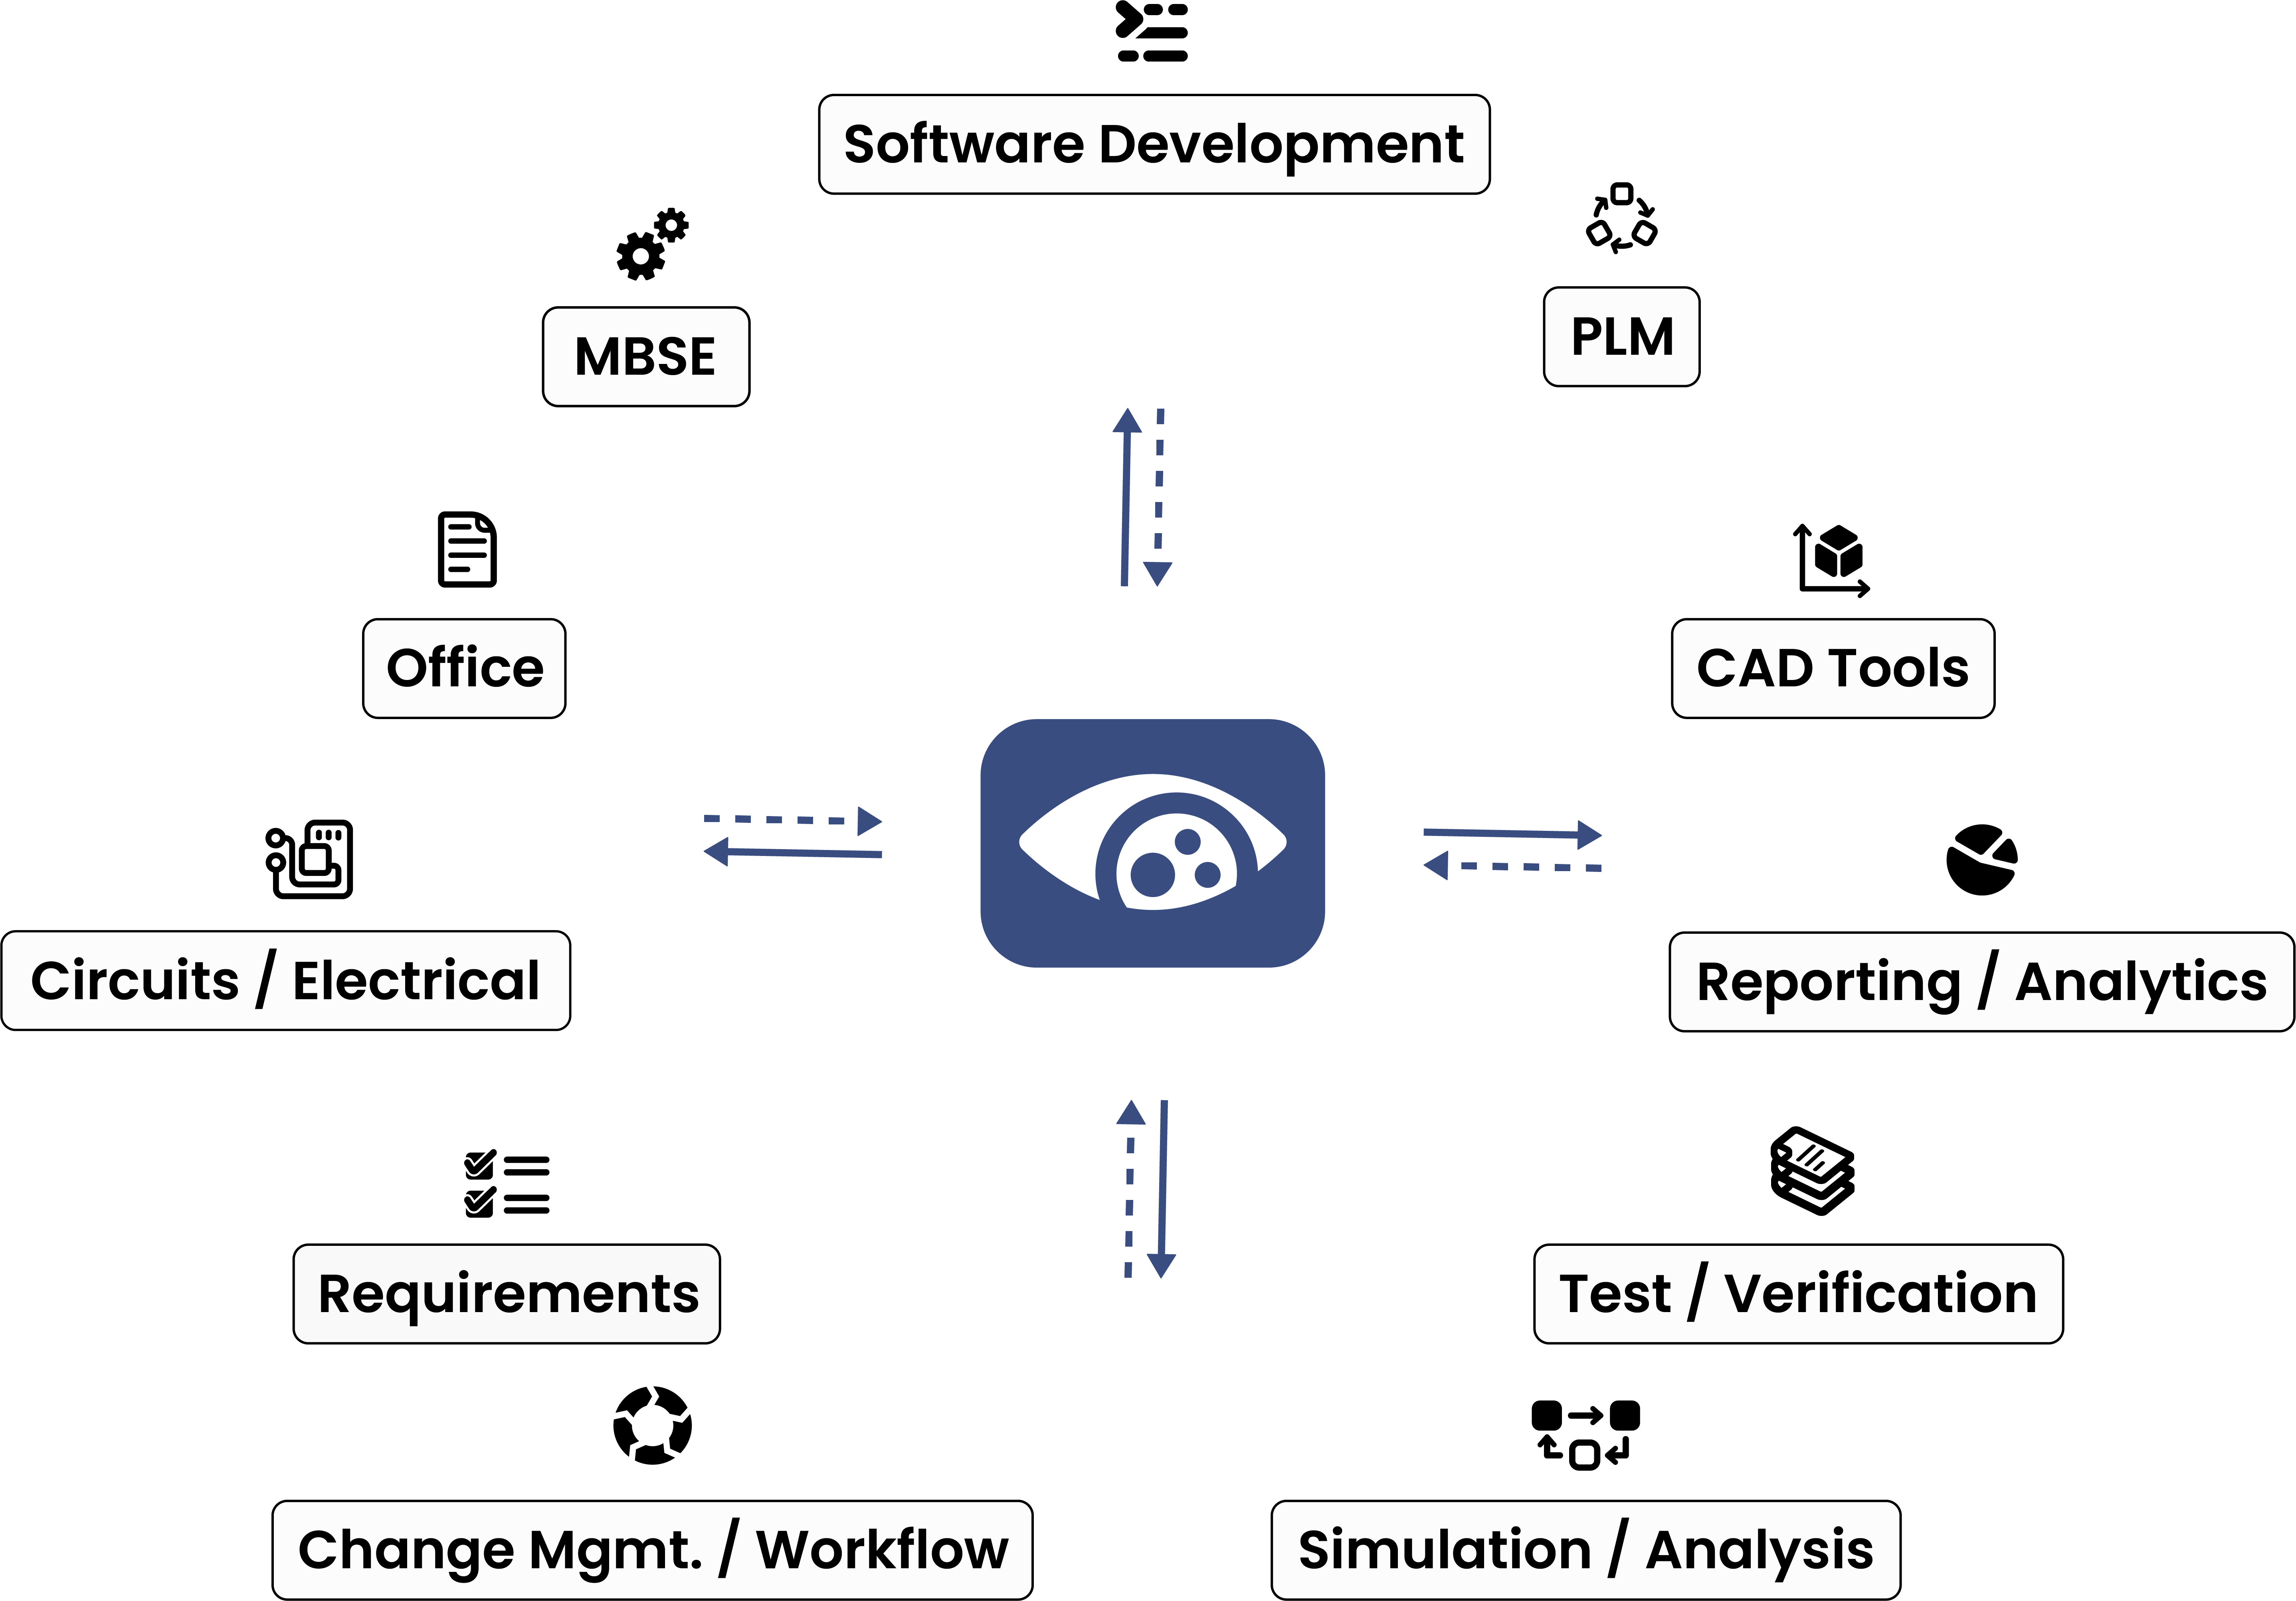 A hub and spoke diagram. The SBE Vision logo is at the center with labels of several development aspects surround the logo. Labels include software development, PLM, CAD Tools, Reporting/Analytics, Test/Verification, Simulation/Analysis, Change Management/Workflow, Requirements, Circuits/Electrical, Office, and MBSE.